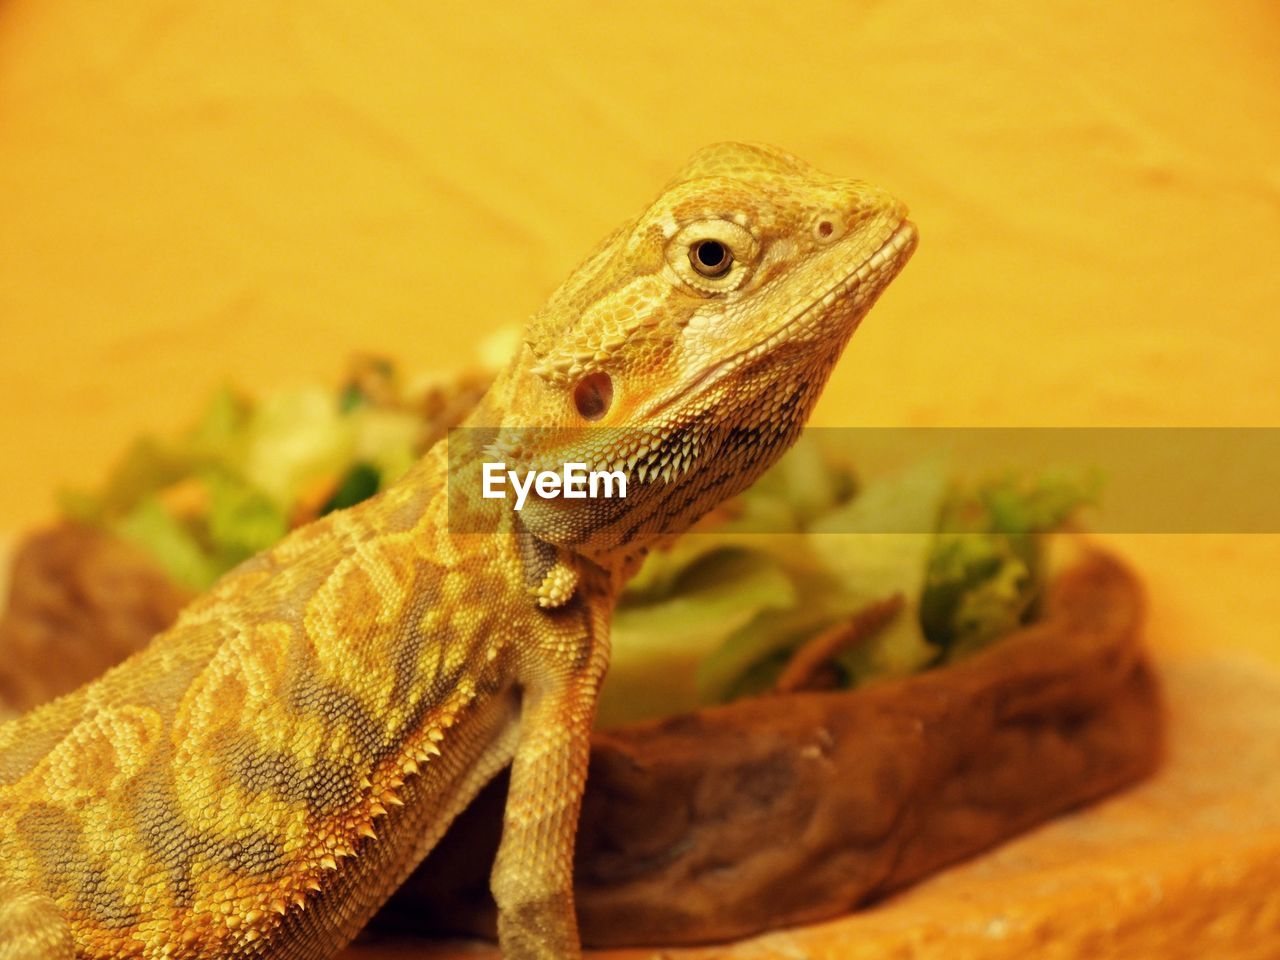 animal themes, animal, one animal, reptile, vertebrate, animal wildlife, animals in the wild, lizard, close-up, focus on foreground, no people, animal body part, bearded dragon, nature, selective focus, looking, looking away, animal head, outdoors, day, animal scale, animal eye